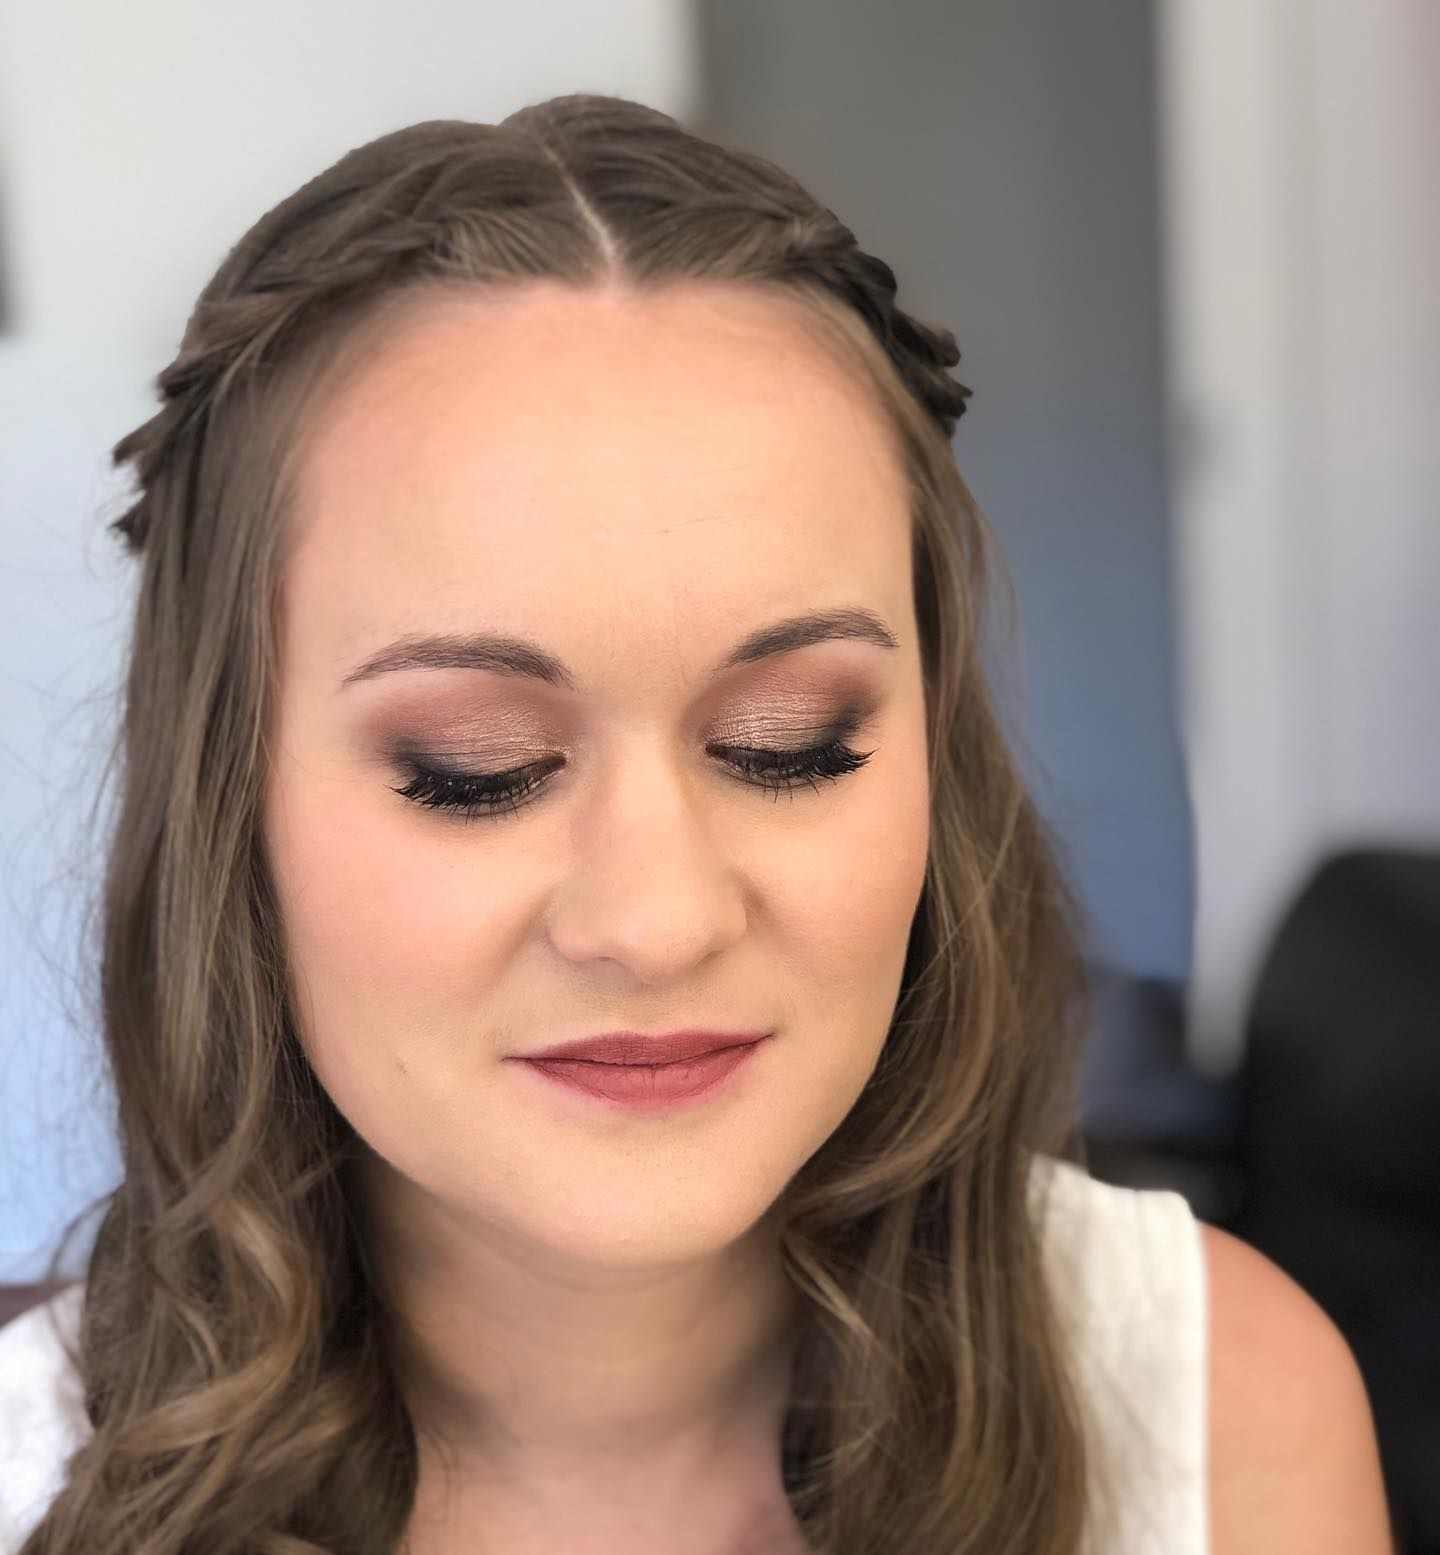 Today S Bridal Makeup Trial Lovely Meeting You Rachel Bridalmakeup In 2020 Makeup Trial Bridal Makeup Bridal Make Up